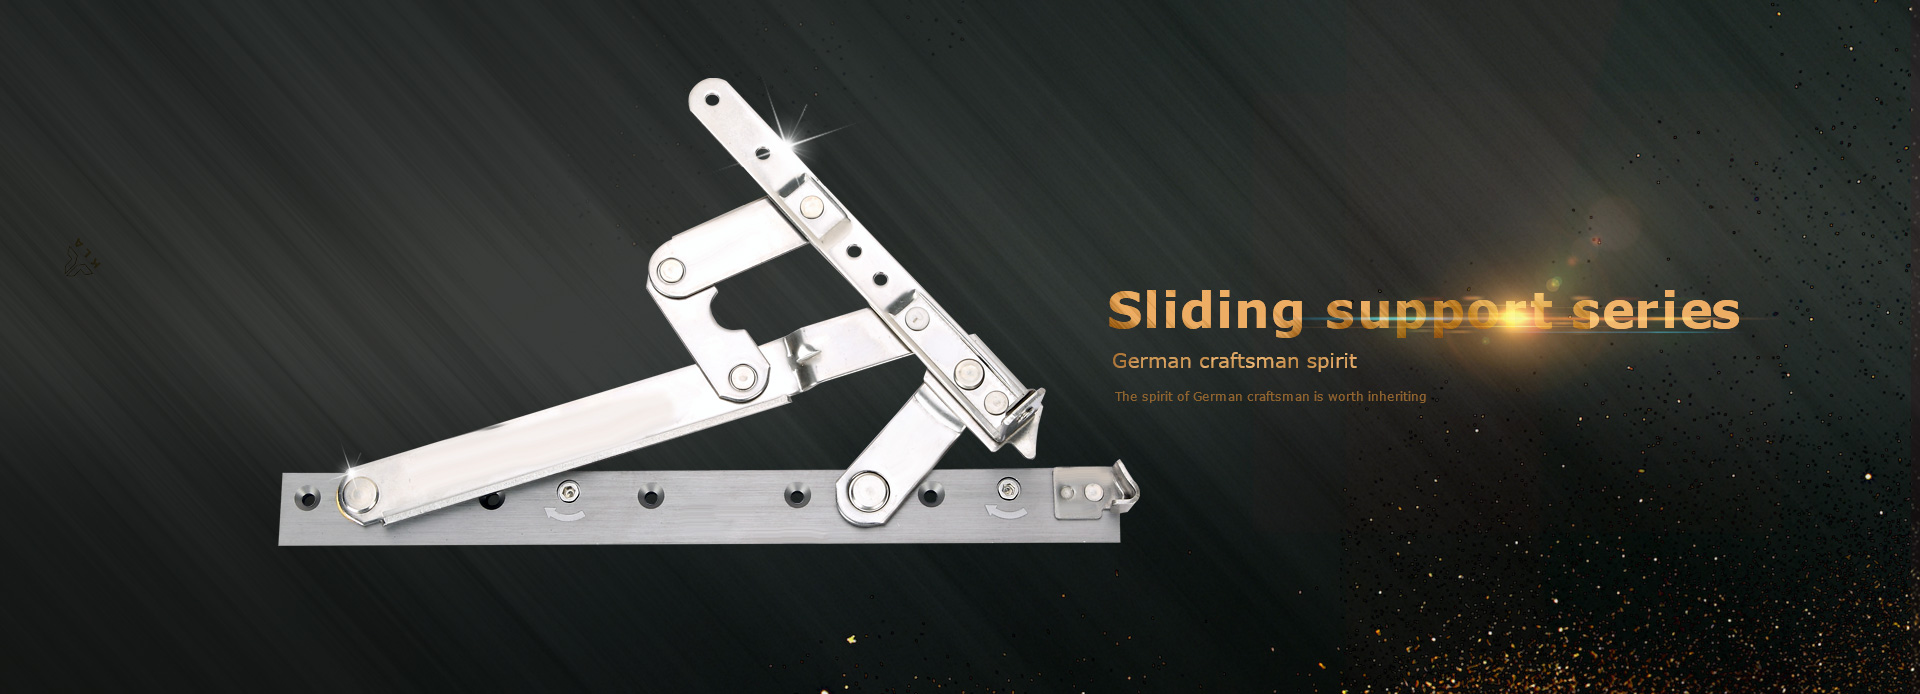 Sliding support series